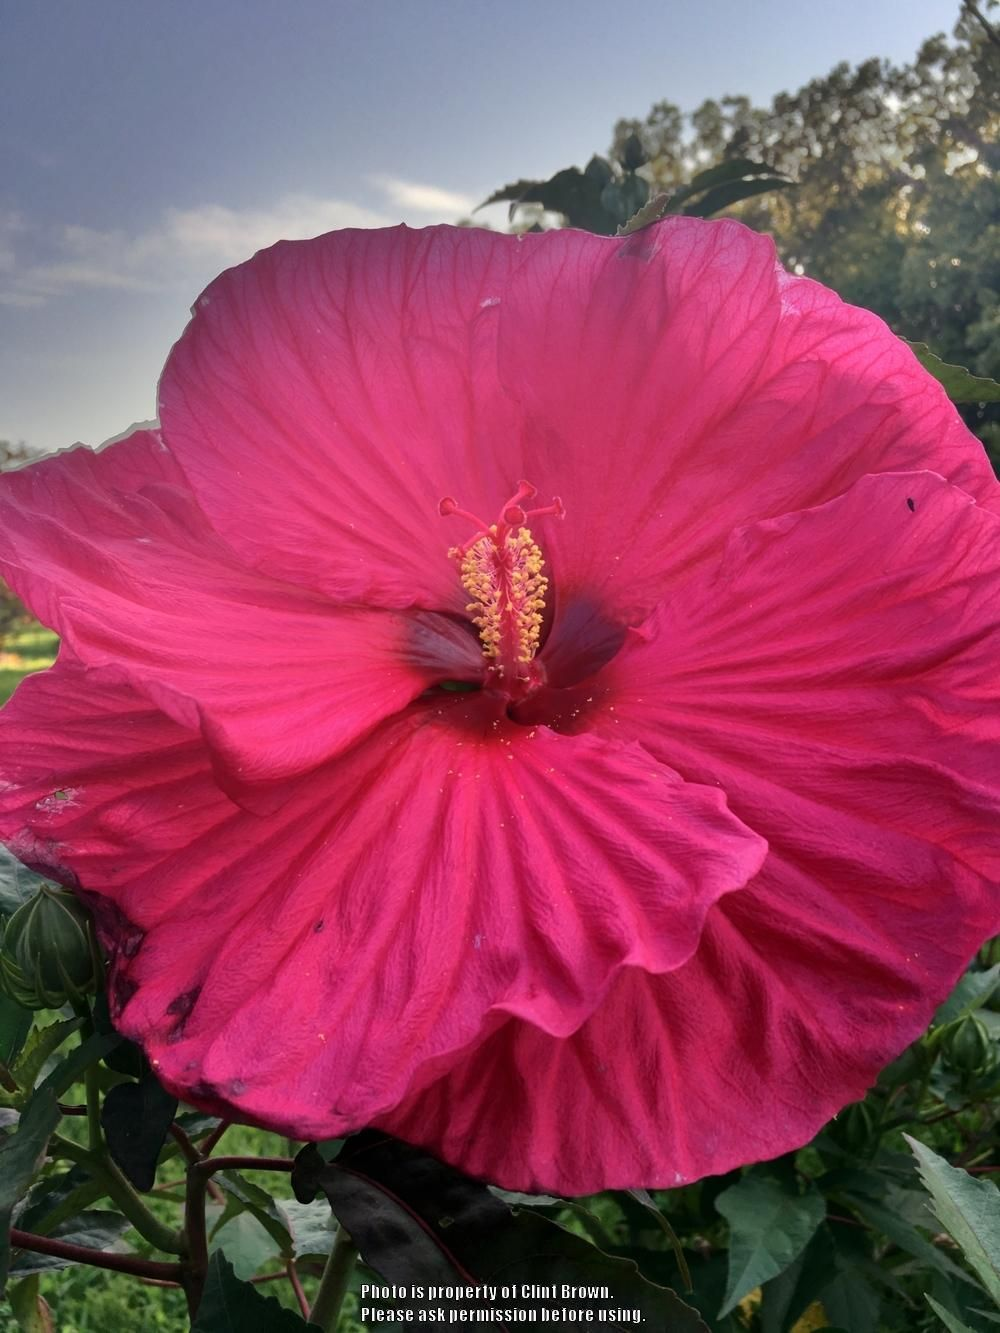 Photo Of Hibiscus Summer In Paradise Uploaded By Clintbrown Hibiscus Hibiscus Flowers Hardy Hibiscus Hibiscus Flower Drawing